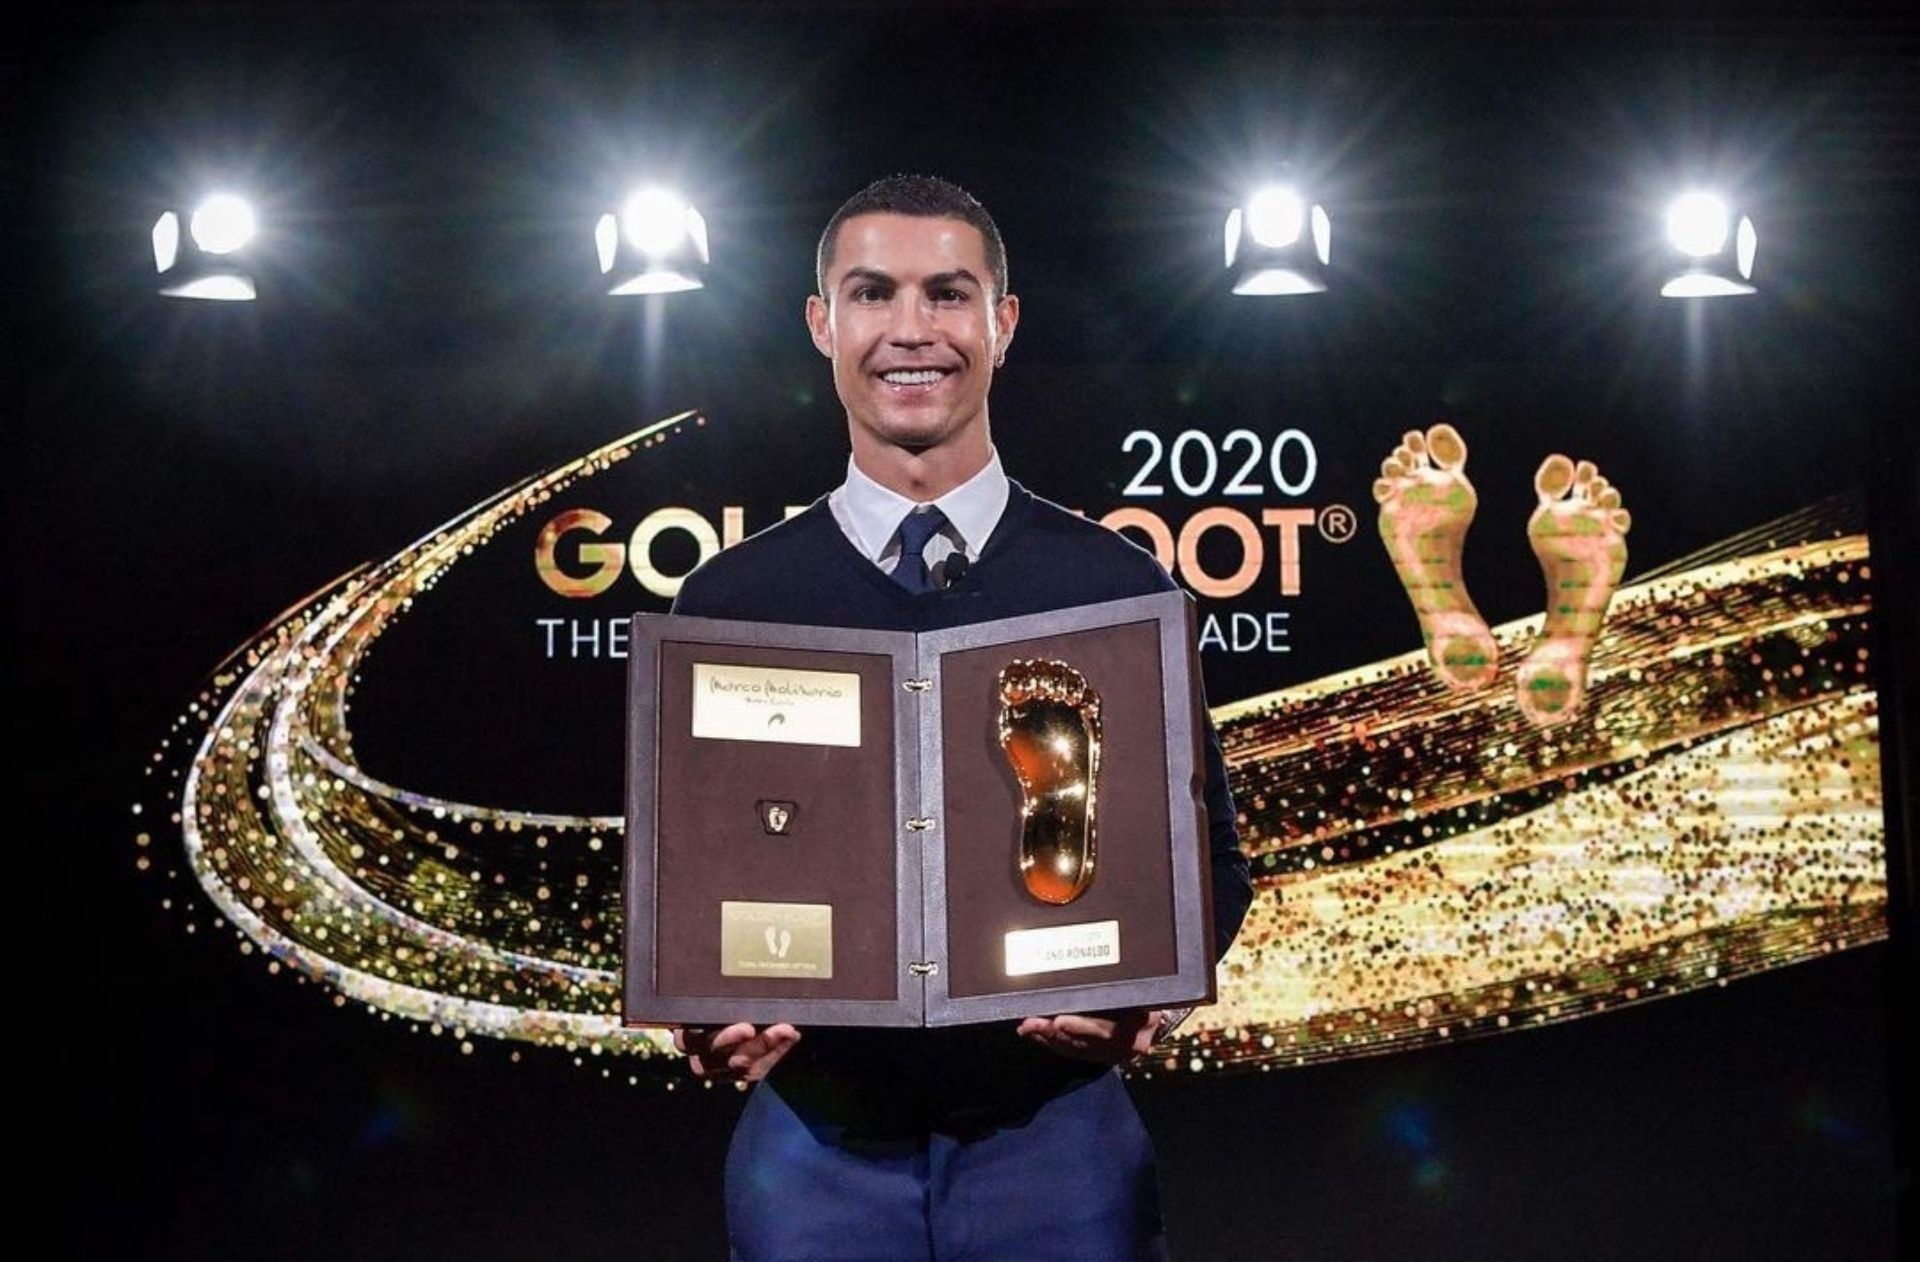 2020 Golden Foot Live Stream: How To Watch Online & Times